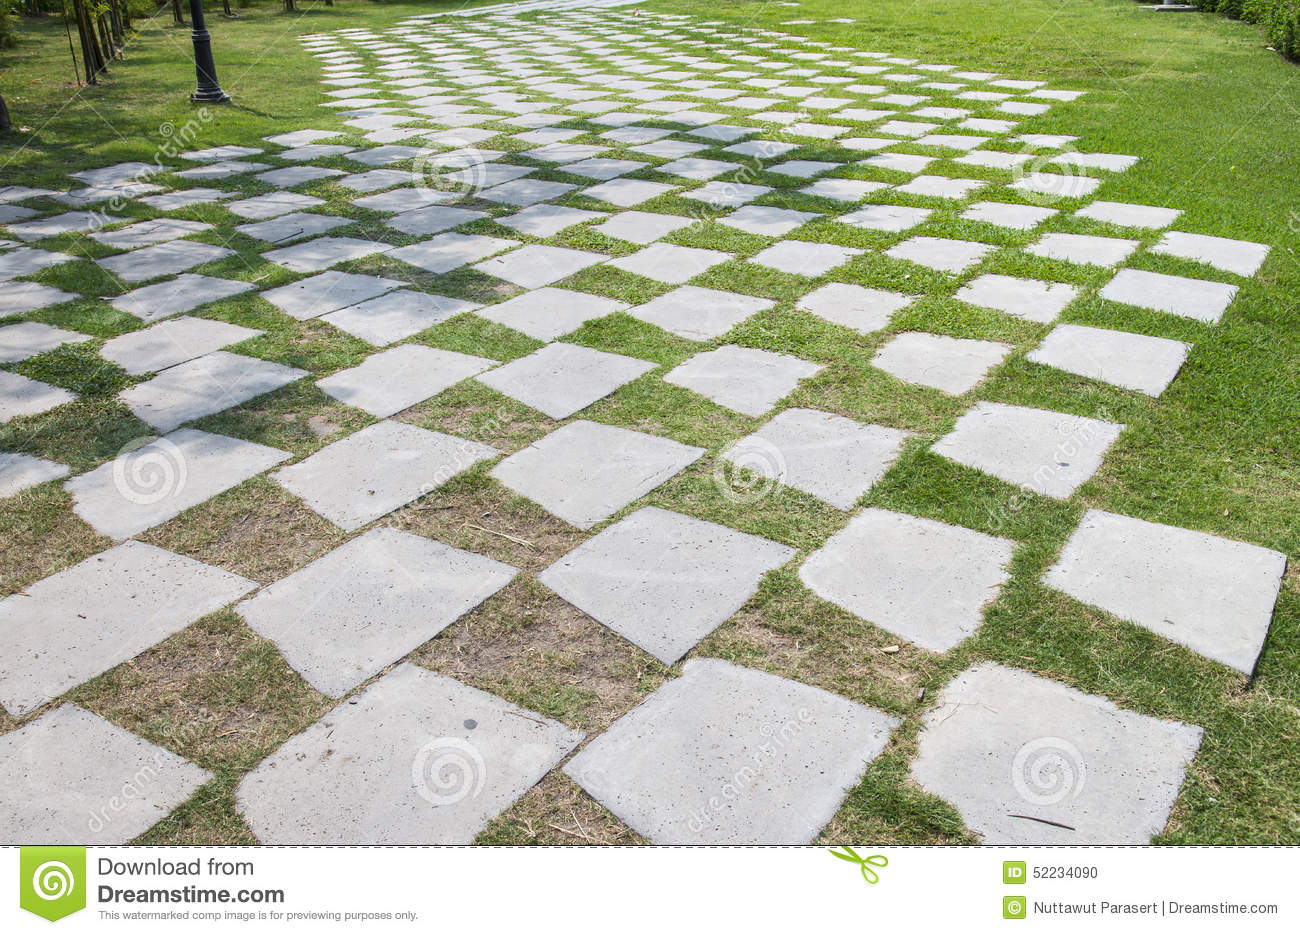 Stone walkway in garden royalty free stock photo image 34535795 - Stone Walkway Pattern On A Grass Field In Perspective View Stock